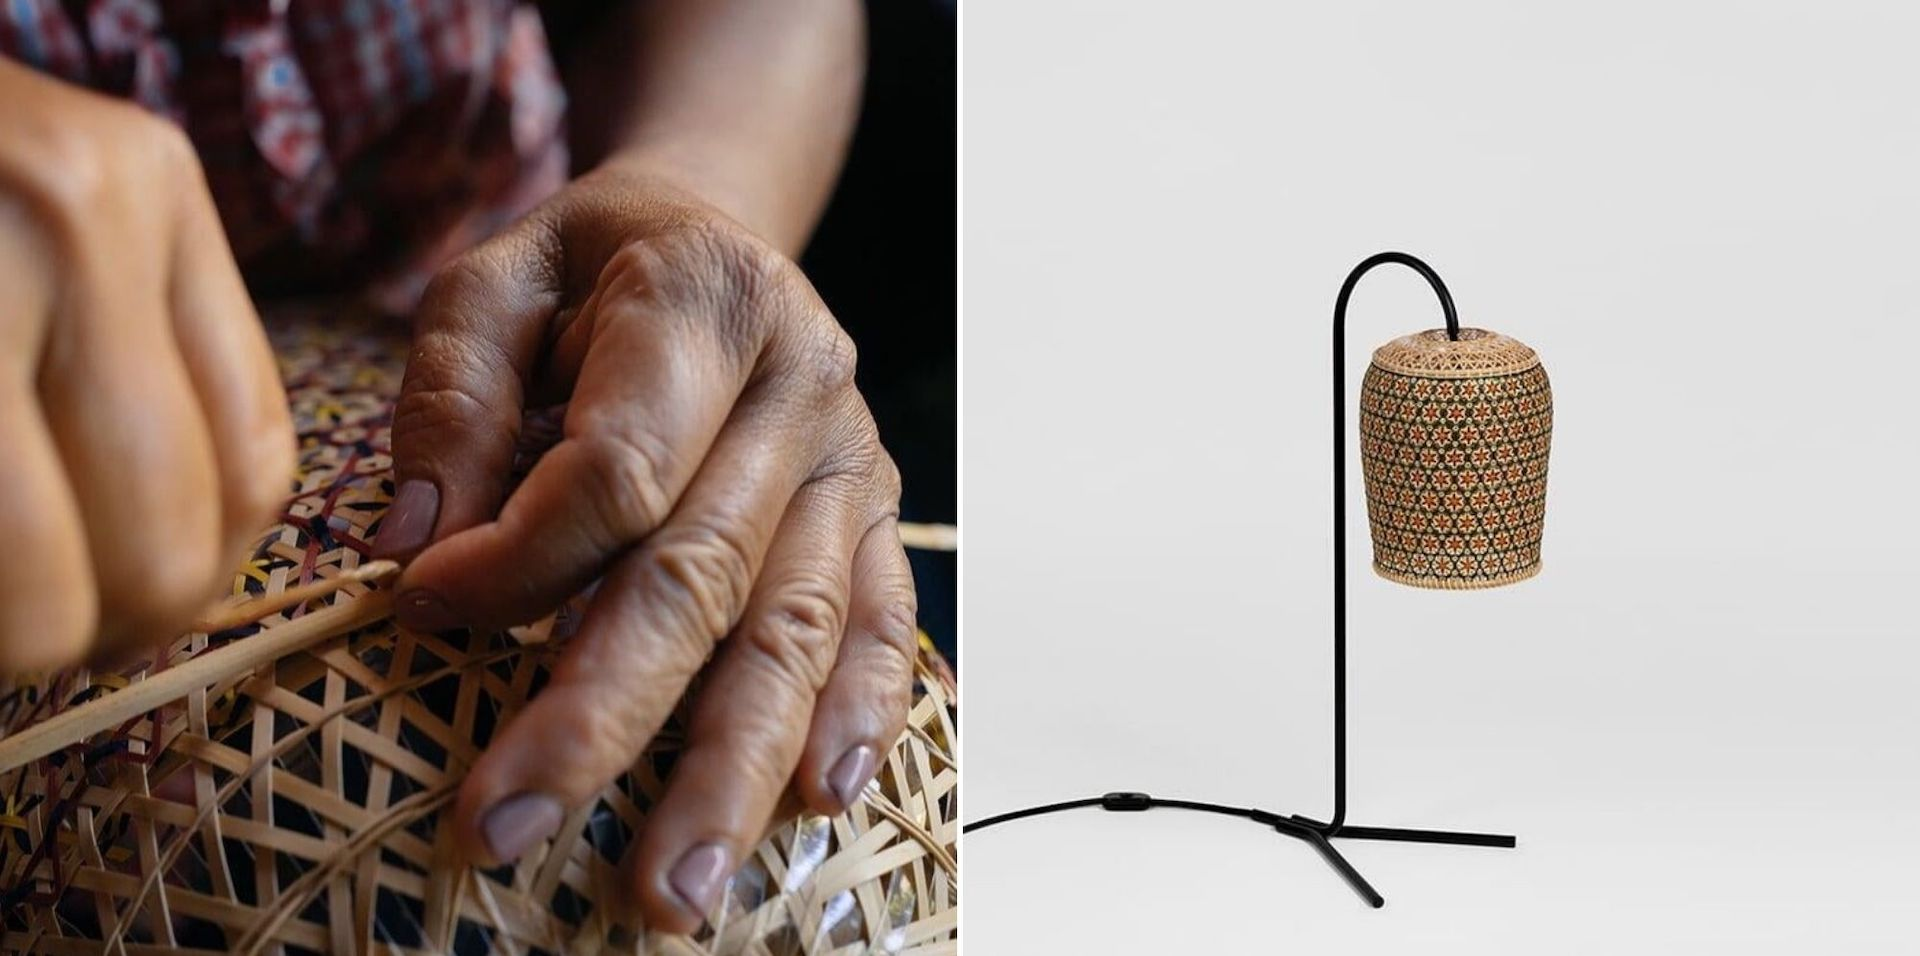 Pikul PET Lamps are made in Thailand in collaboration the Traditional Bamboo Handicraft Center. The collection combines discarded PET plastic with bamboo. Photos © PET Lamp